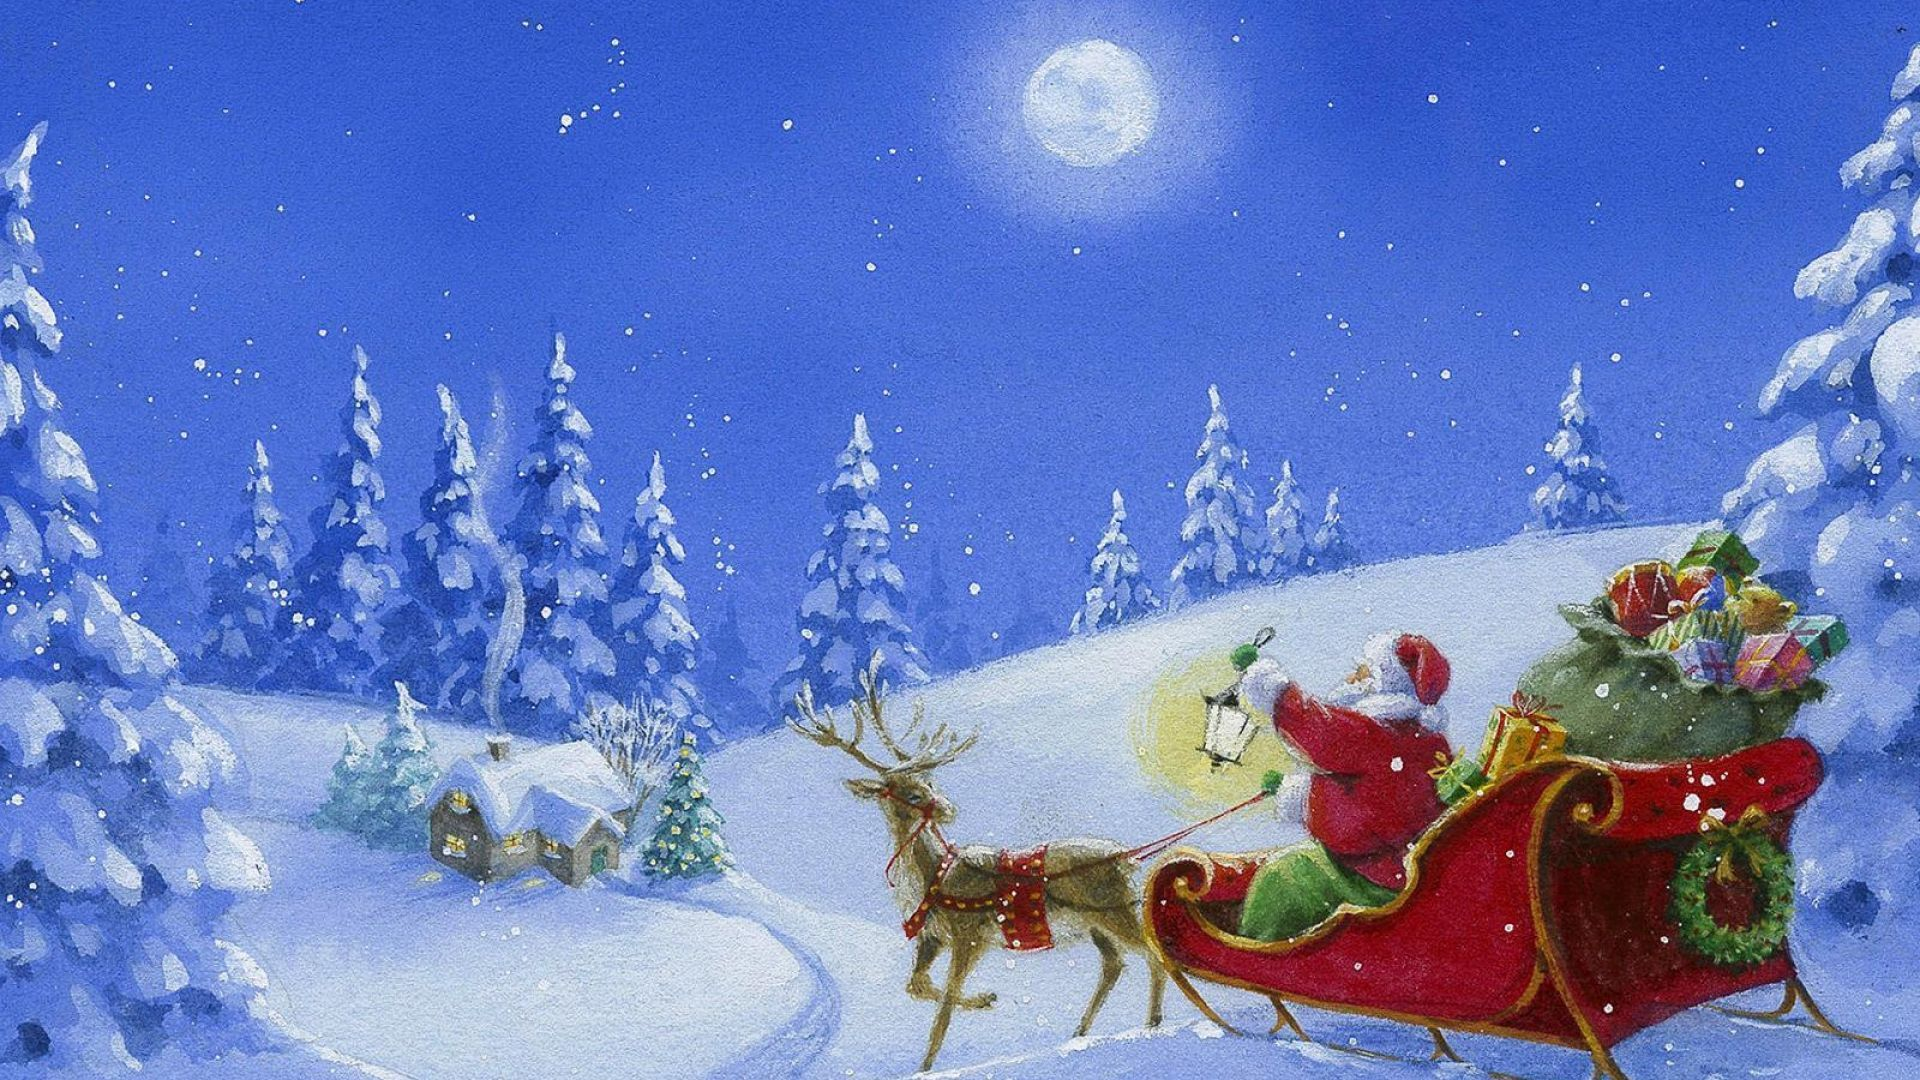 Wallpaper En Haute Definition 048 Sur Noel Pere Noel Au